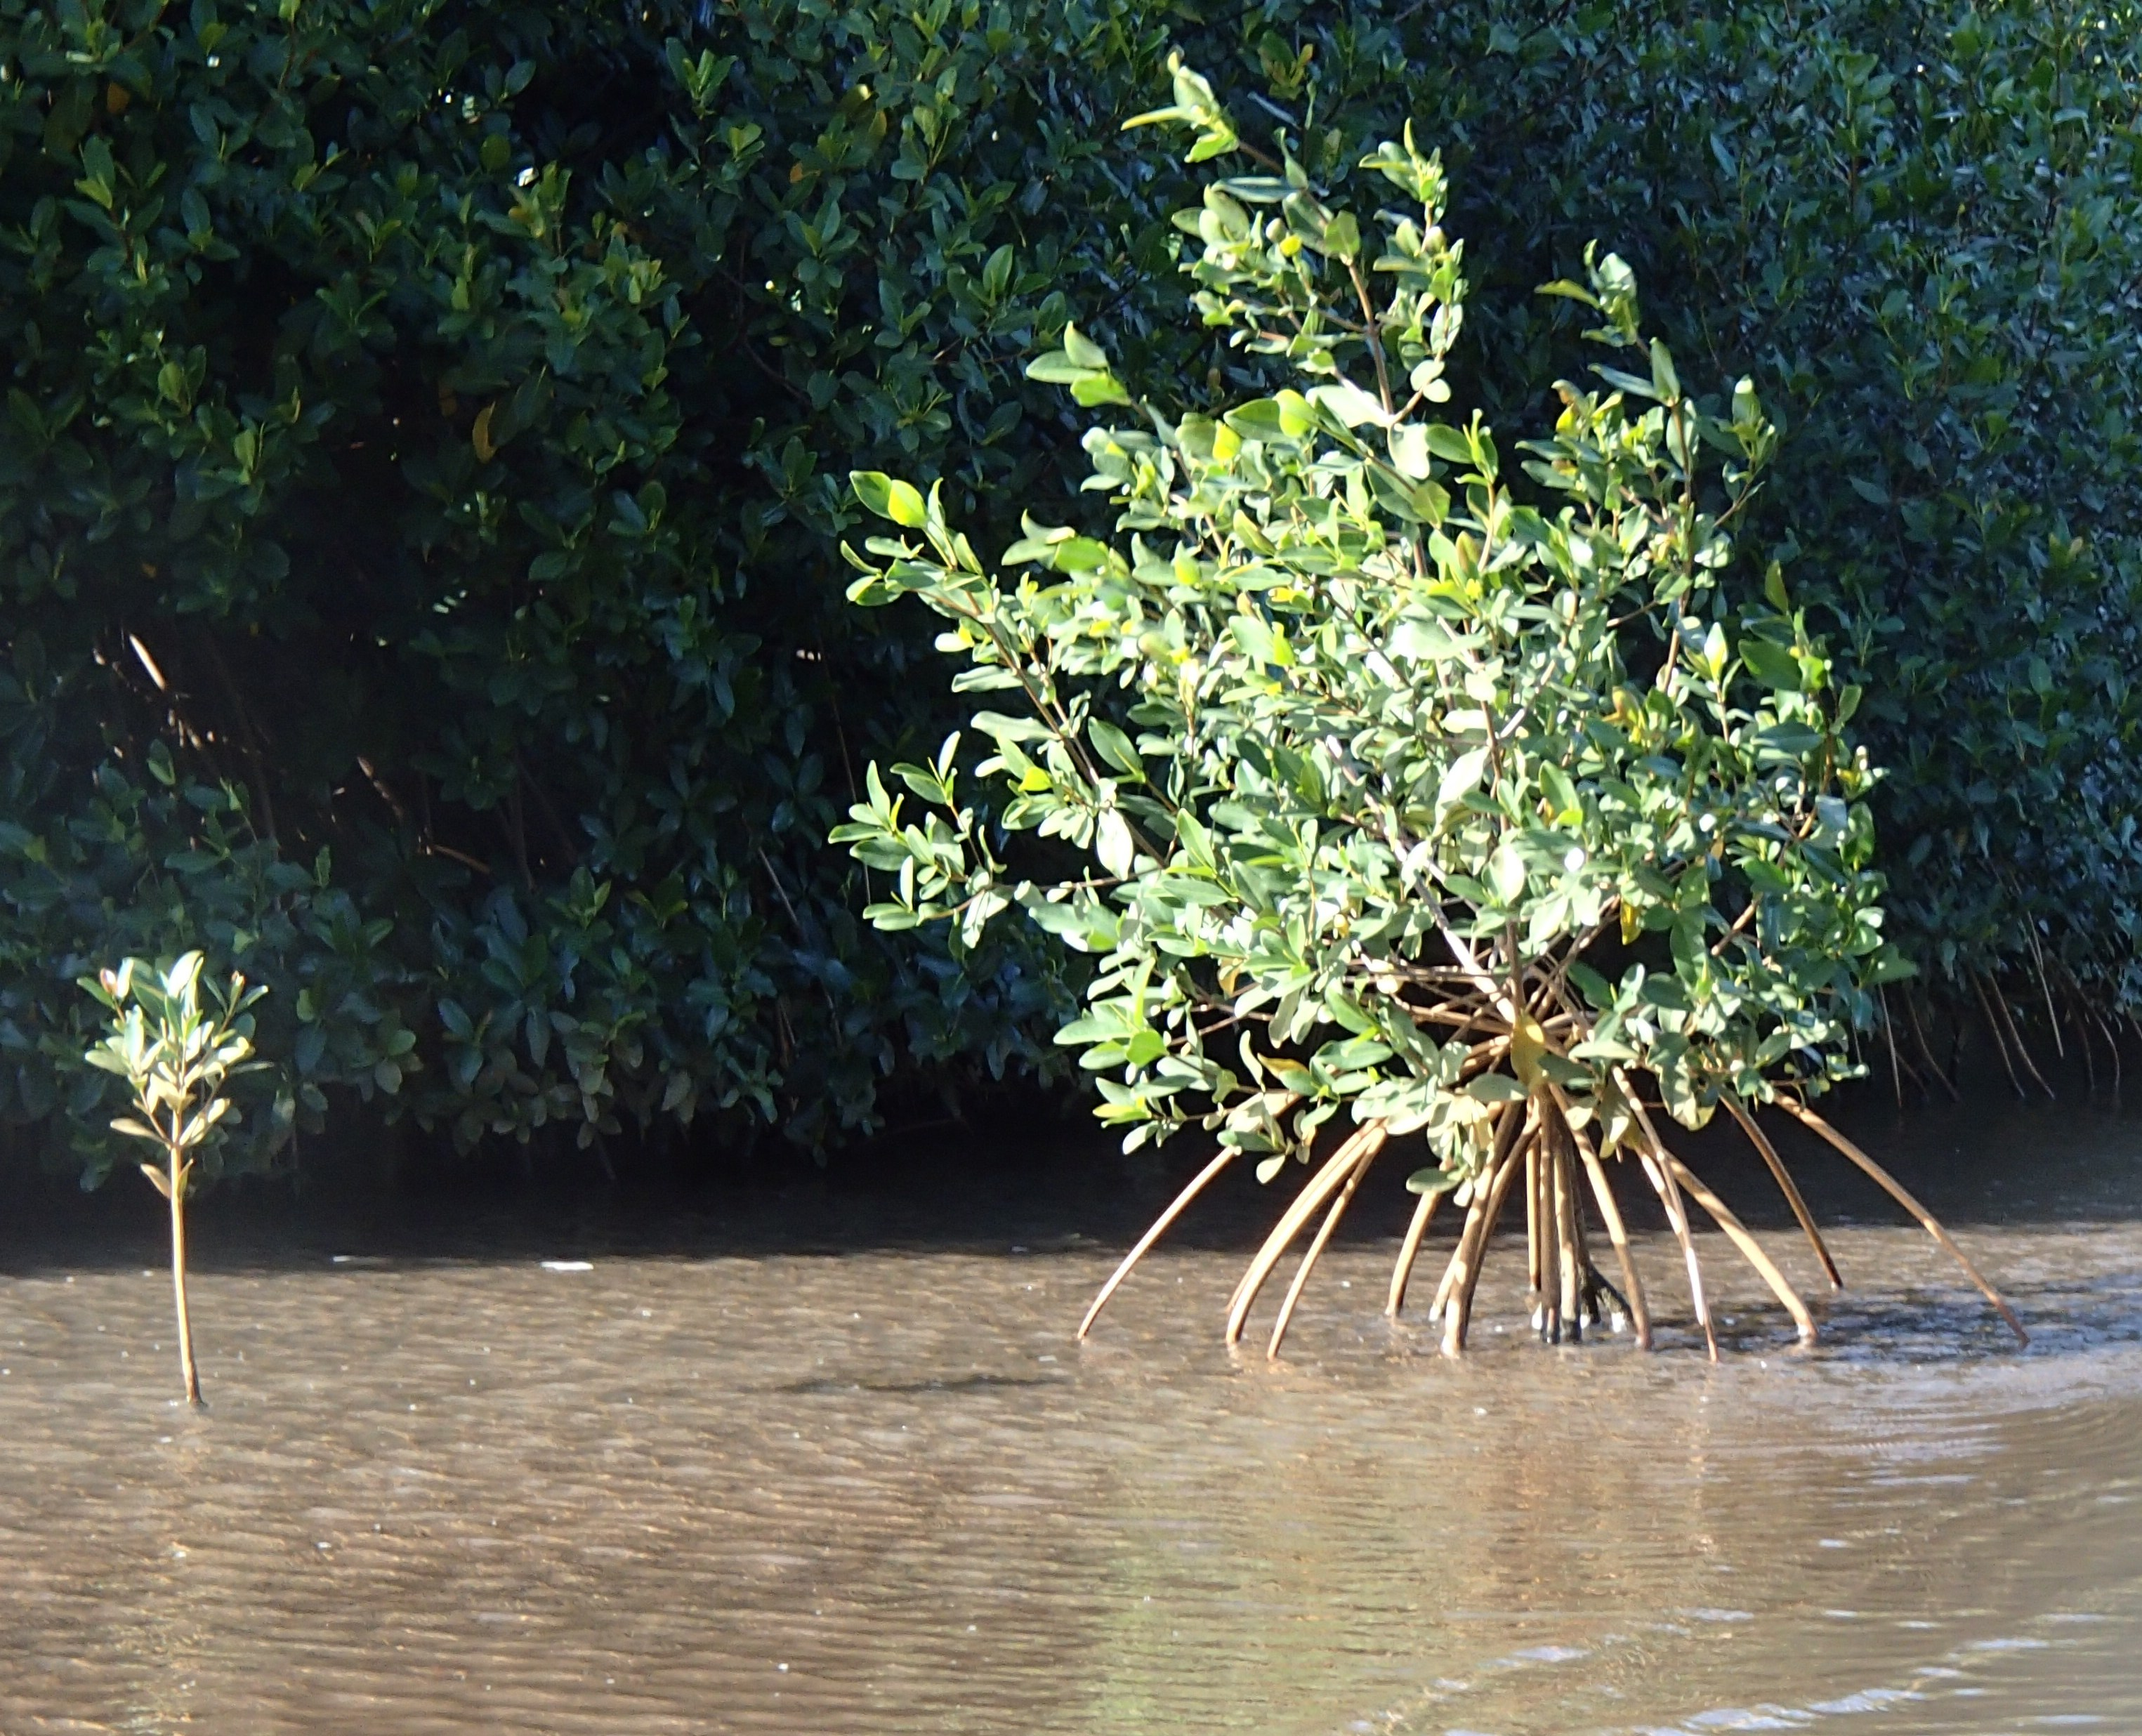 Baby mangrove grow up fast